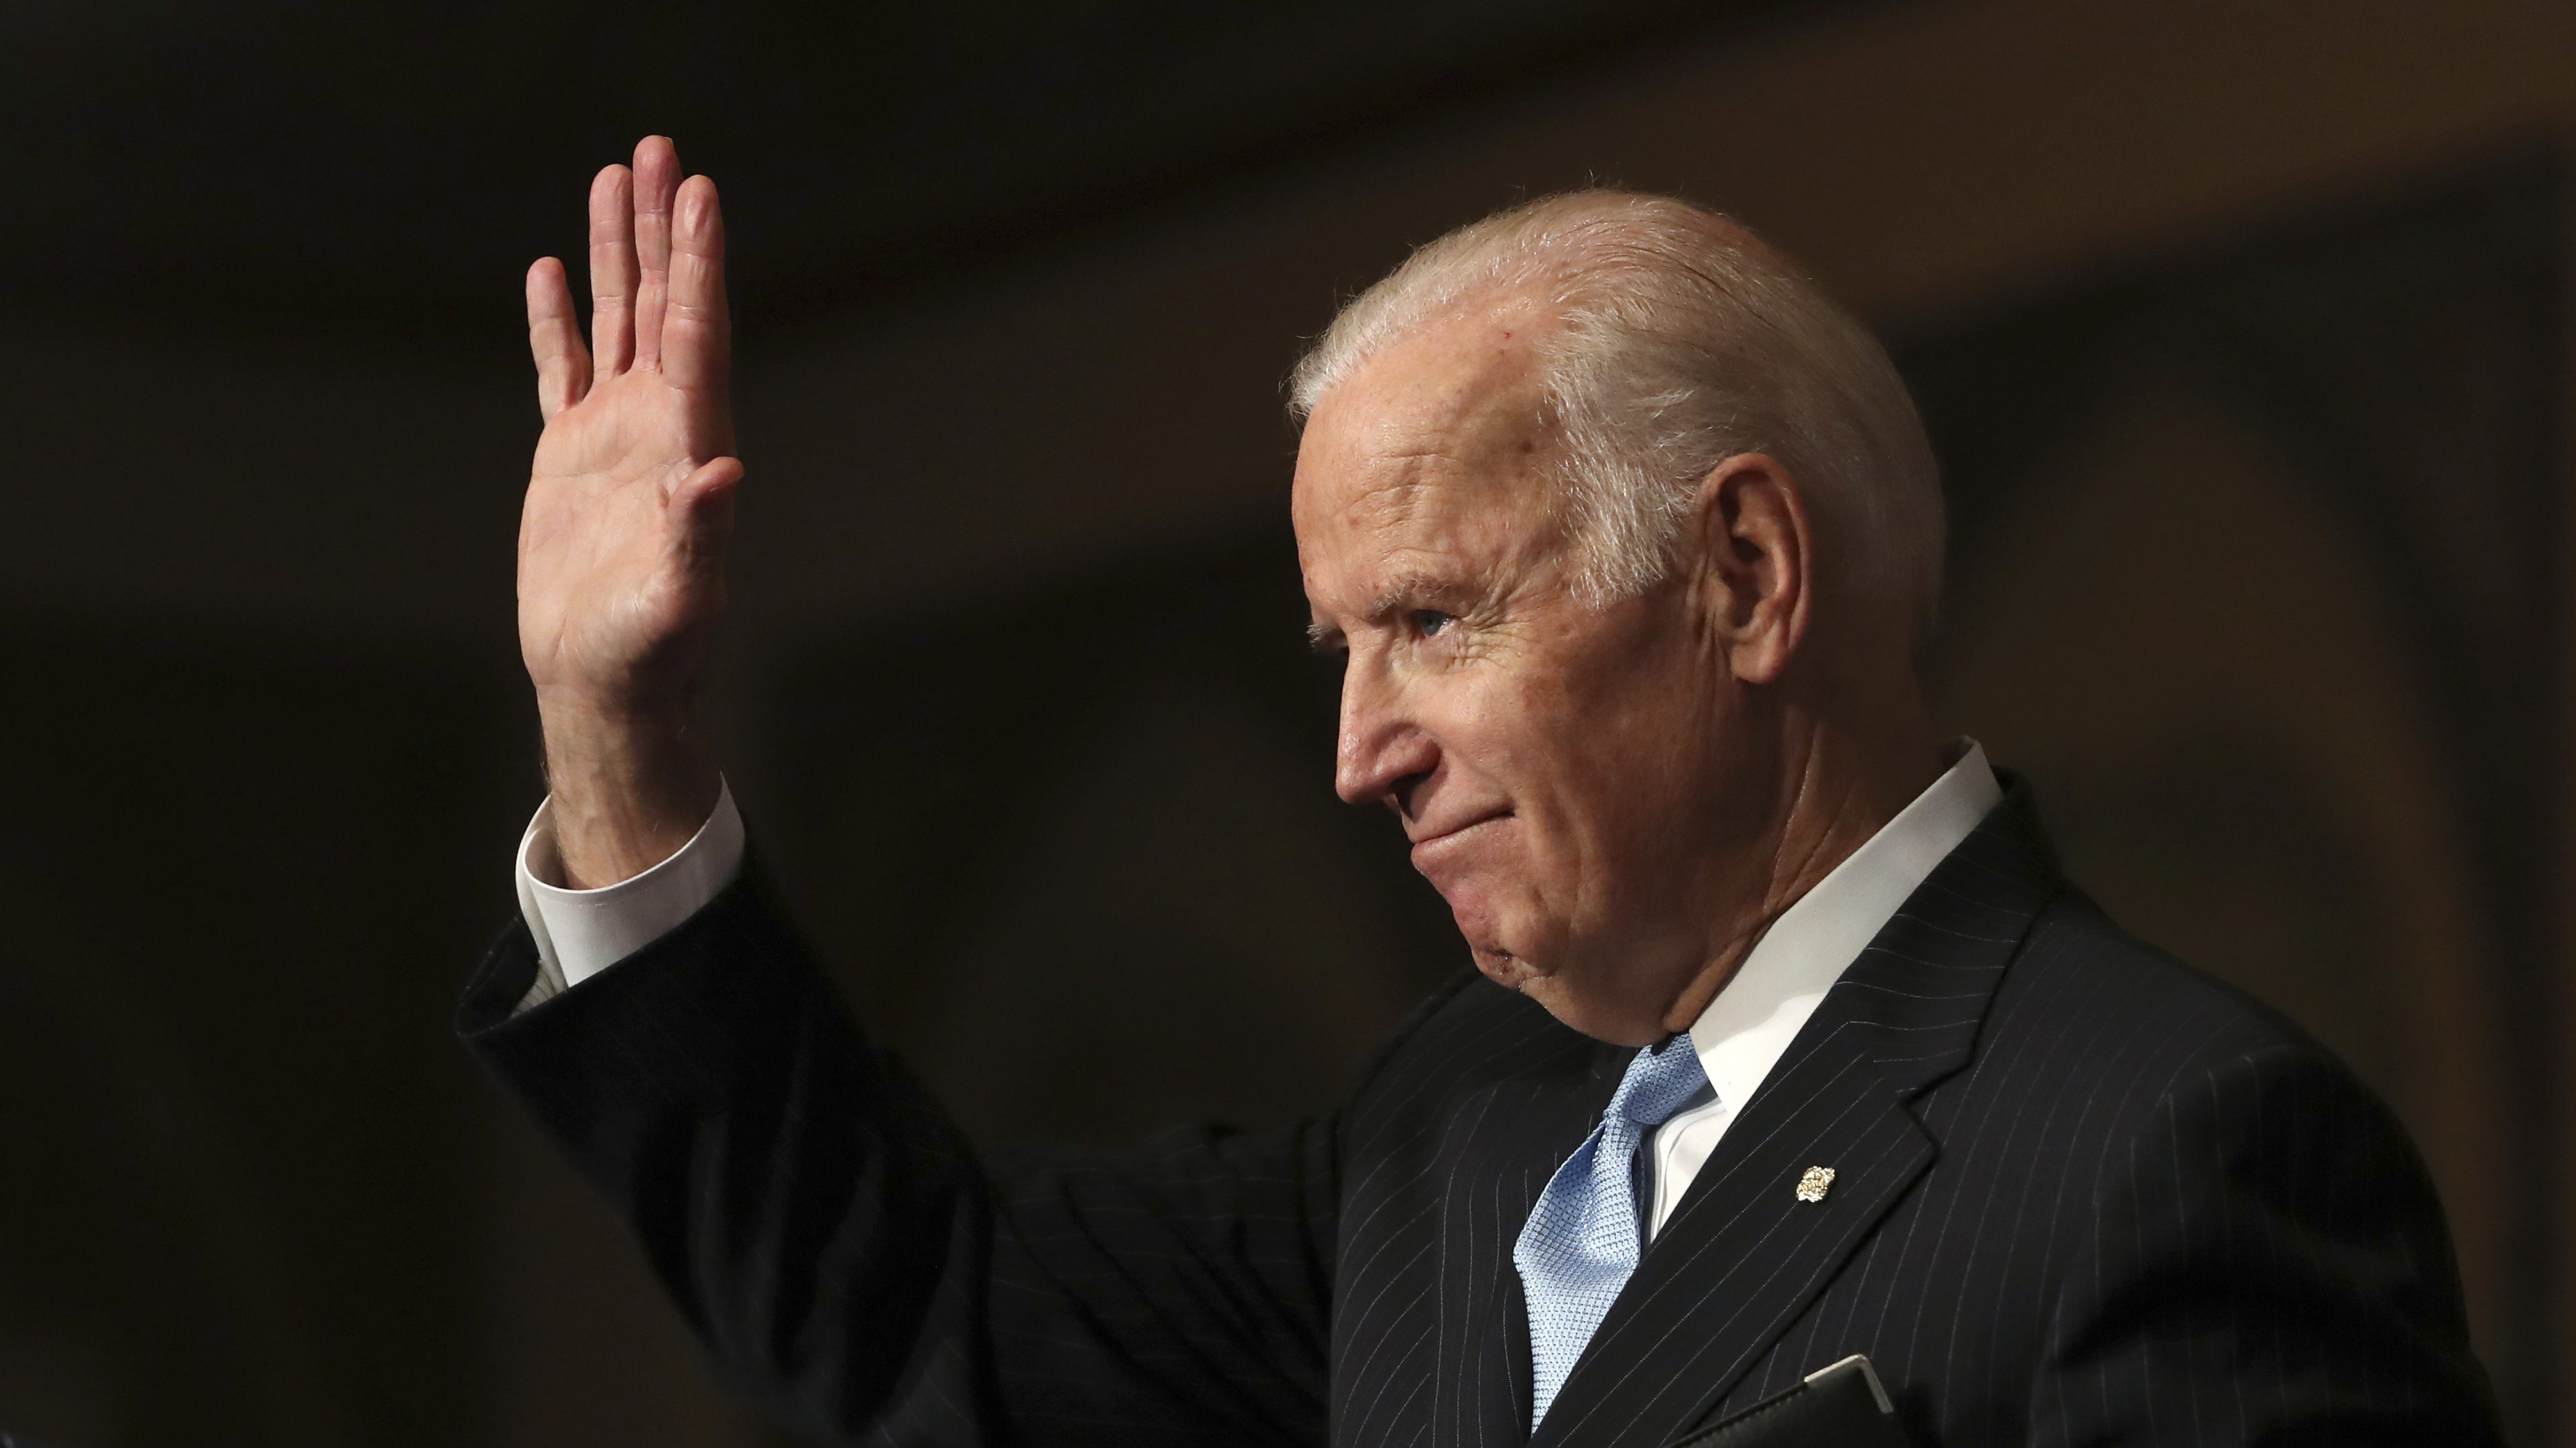 Vice President Joe Biden waves as he concludes his speech about sound financial sector regulation at Georgetown University in Washington, Monday, Dec. 5, 2016. (AP Photo/Manuel Balce Ceneta)